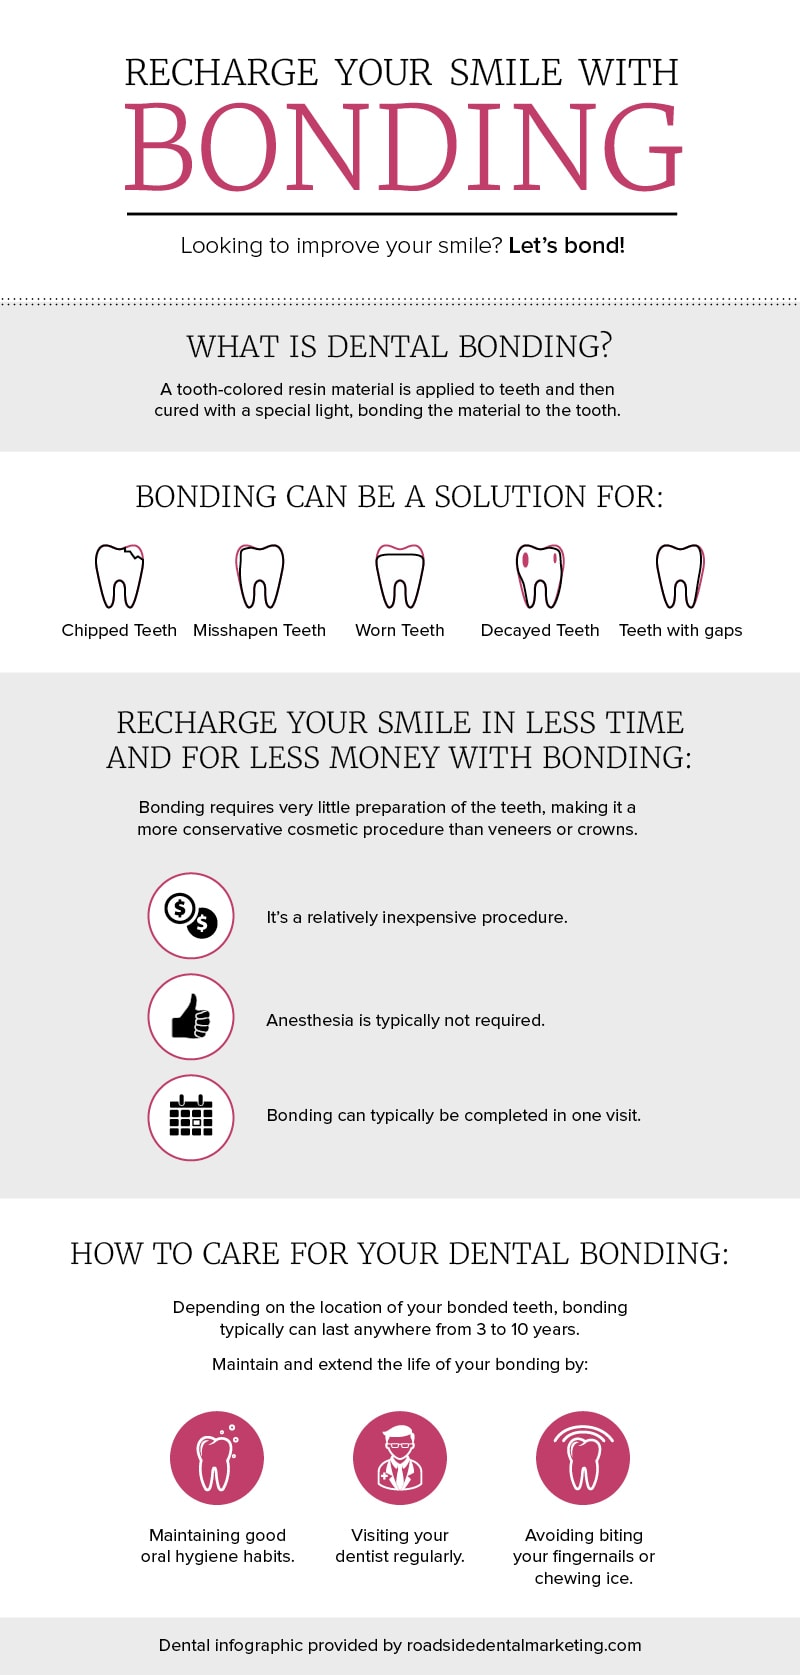 Dental infographic - Recharge your smile with dental bonding!